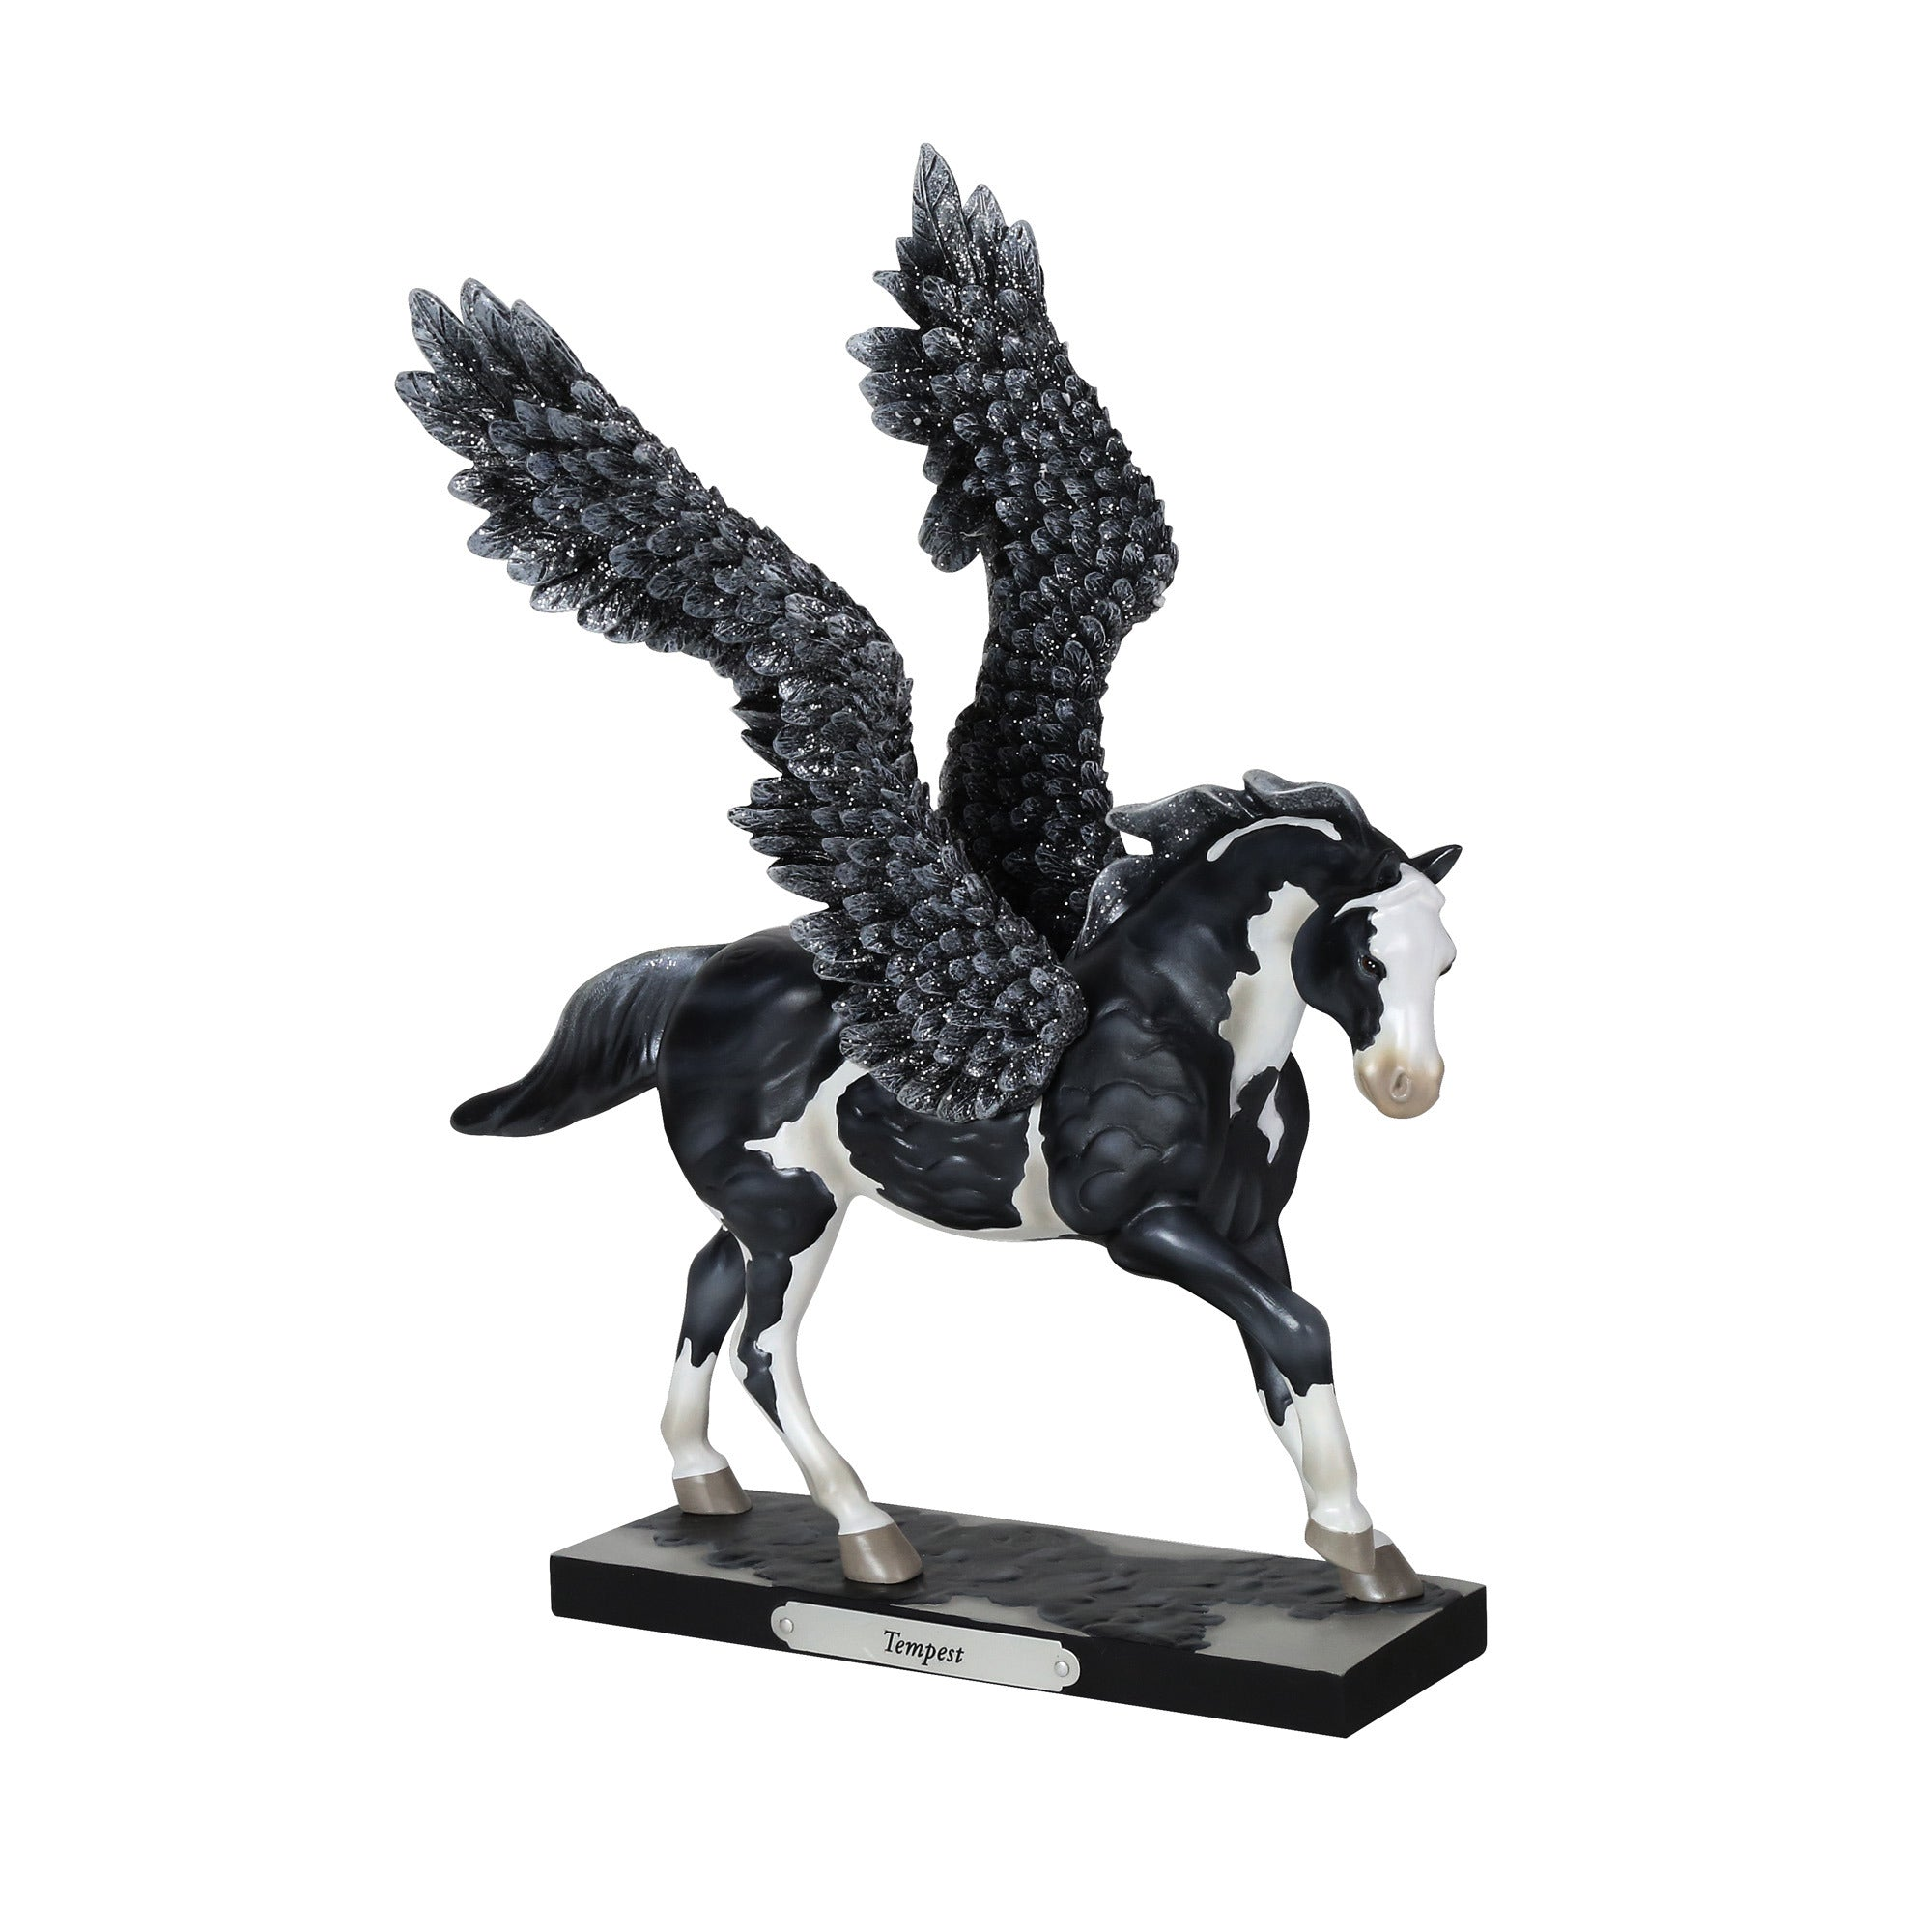 Tempest Figurine - Rustic Lane Boutique